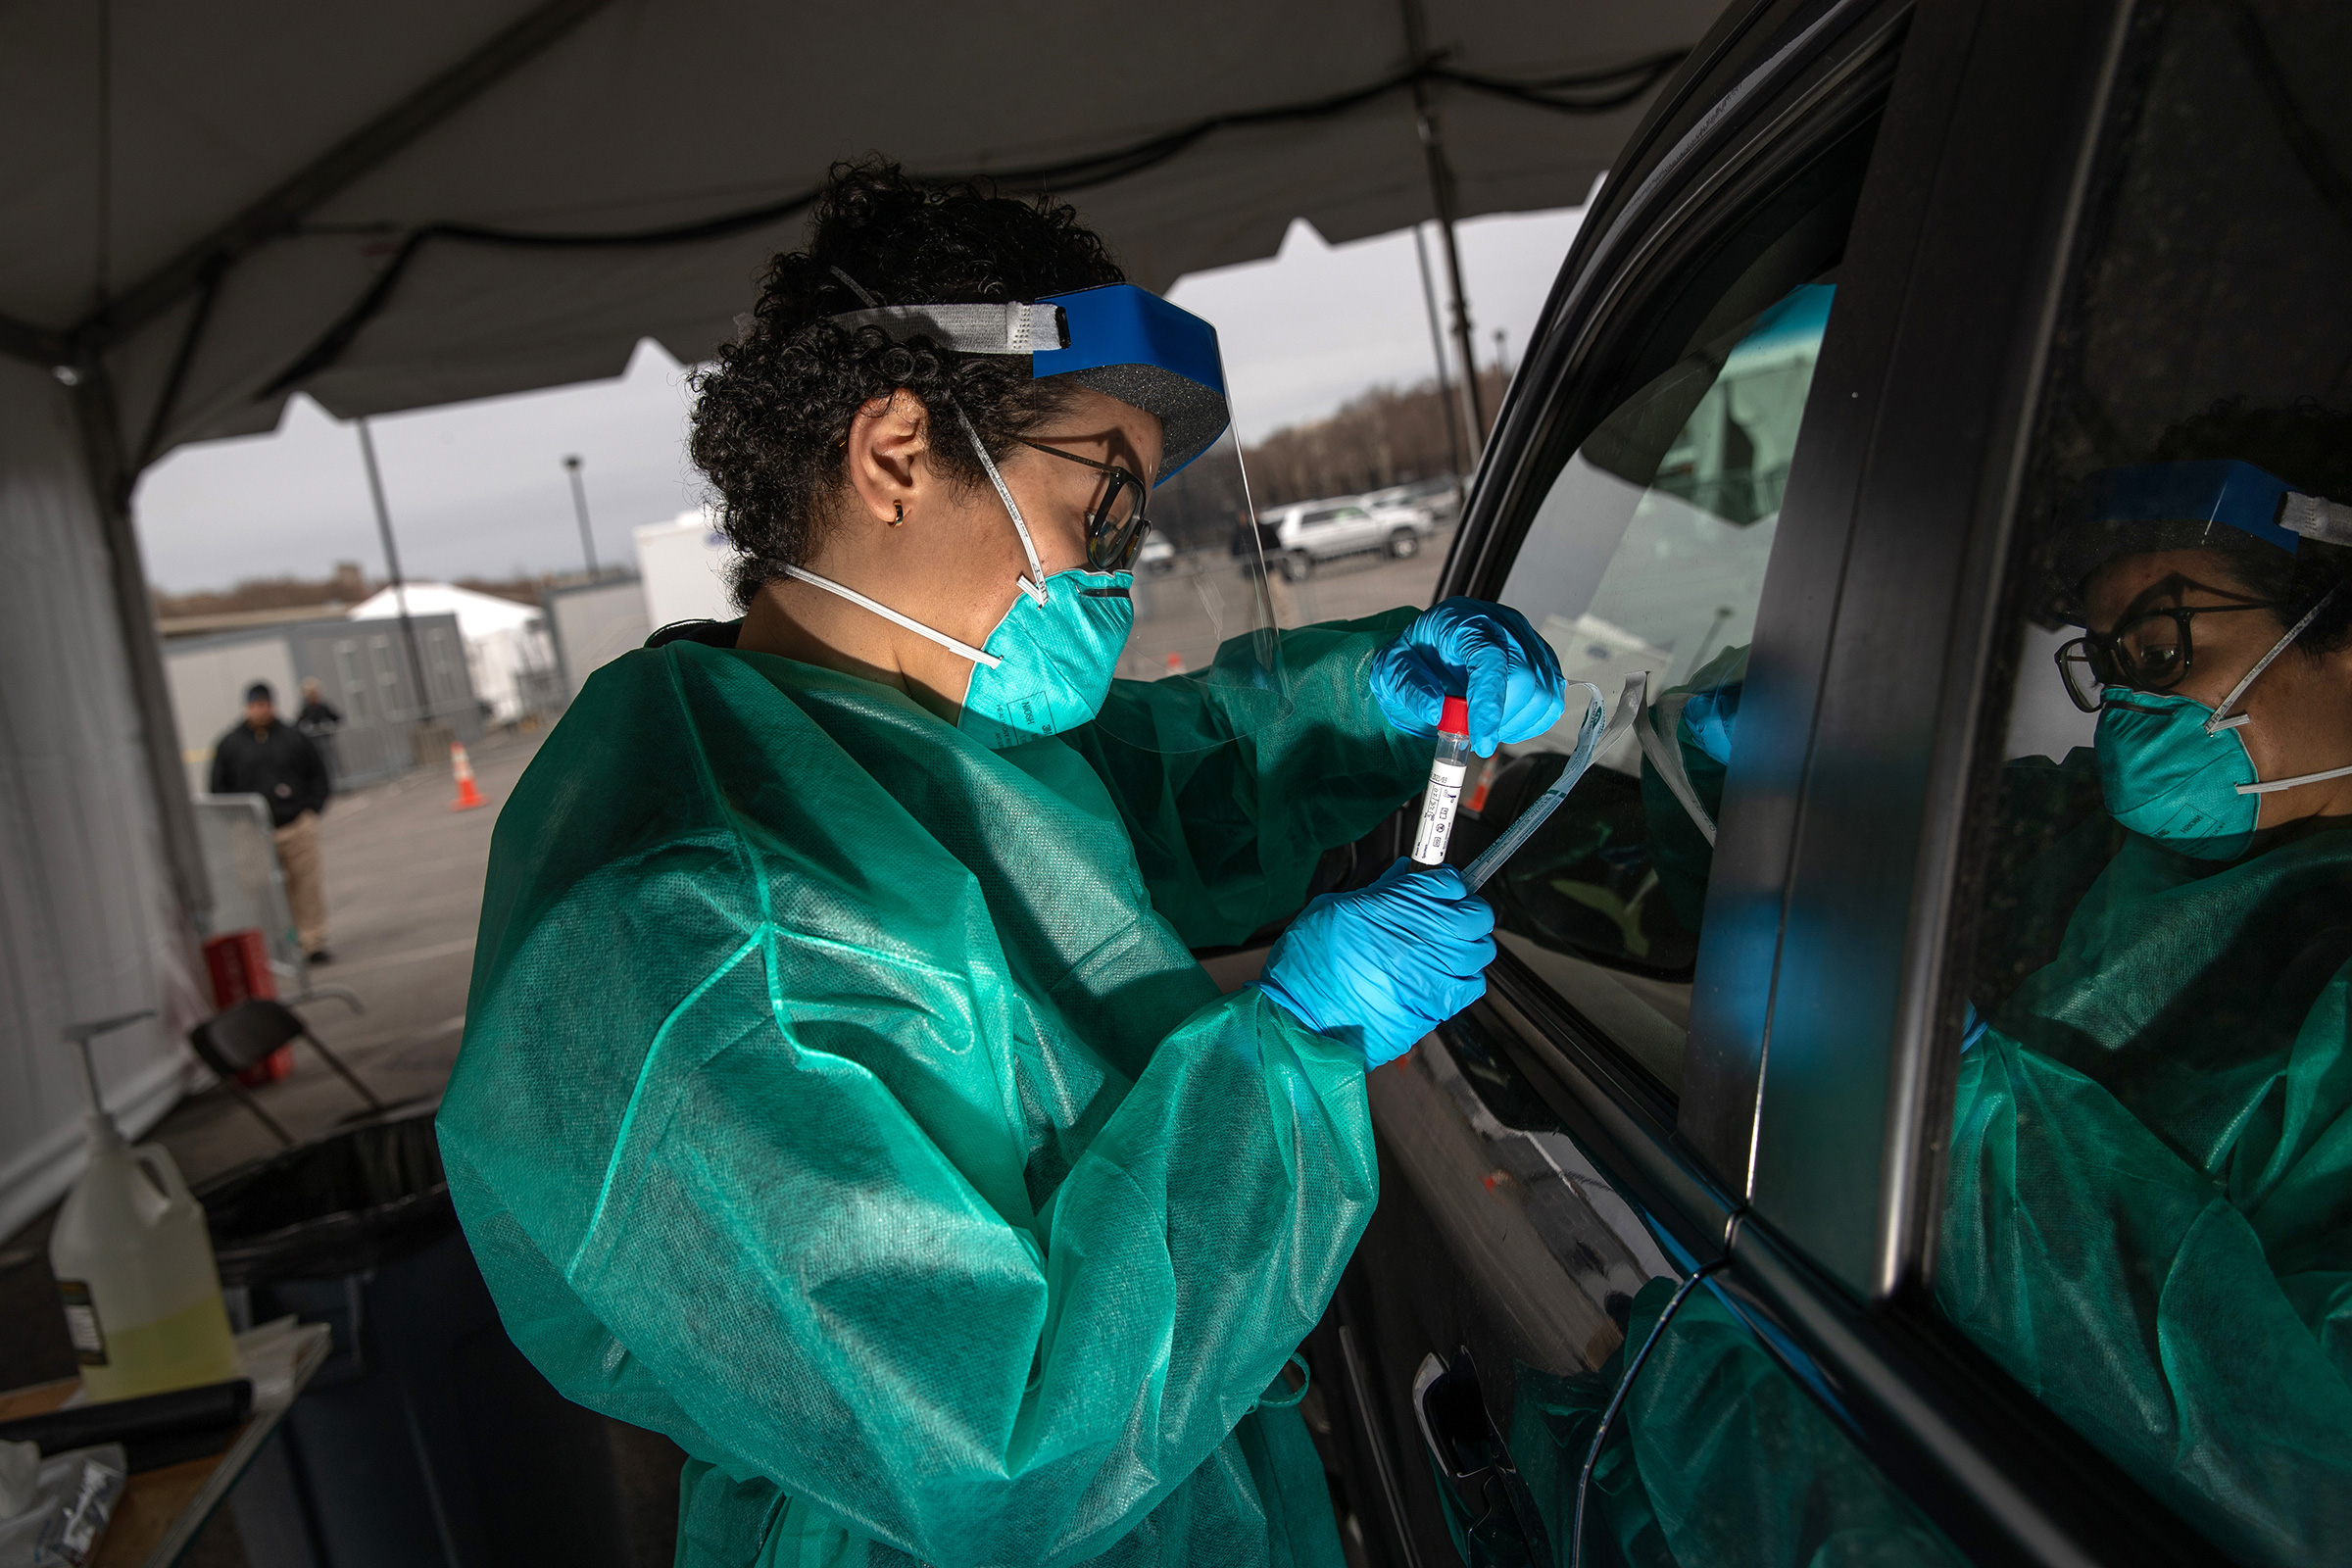 A health worker handles a coronavirus swab test at a drive-thru testing center for COVID-19 at Lehman College on in the Bronx, N.Y., March 28, 2020.